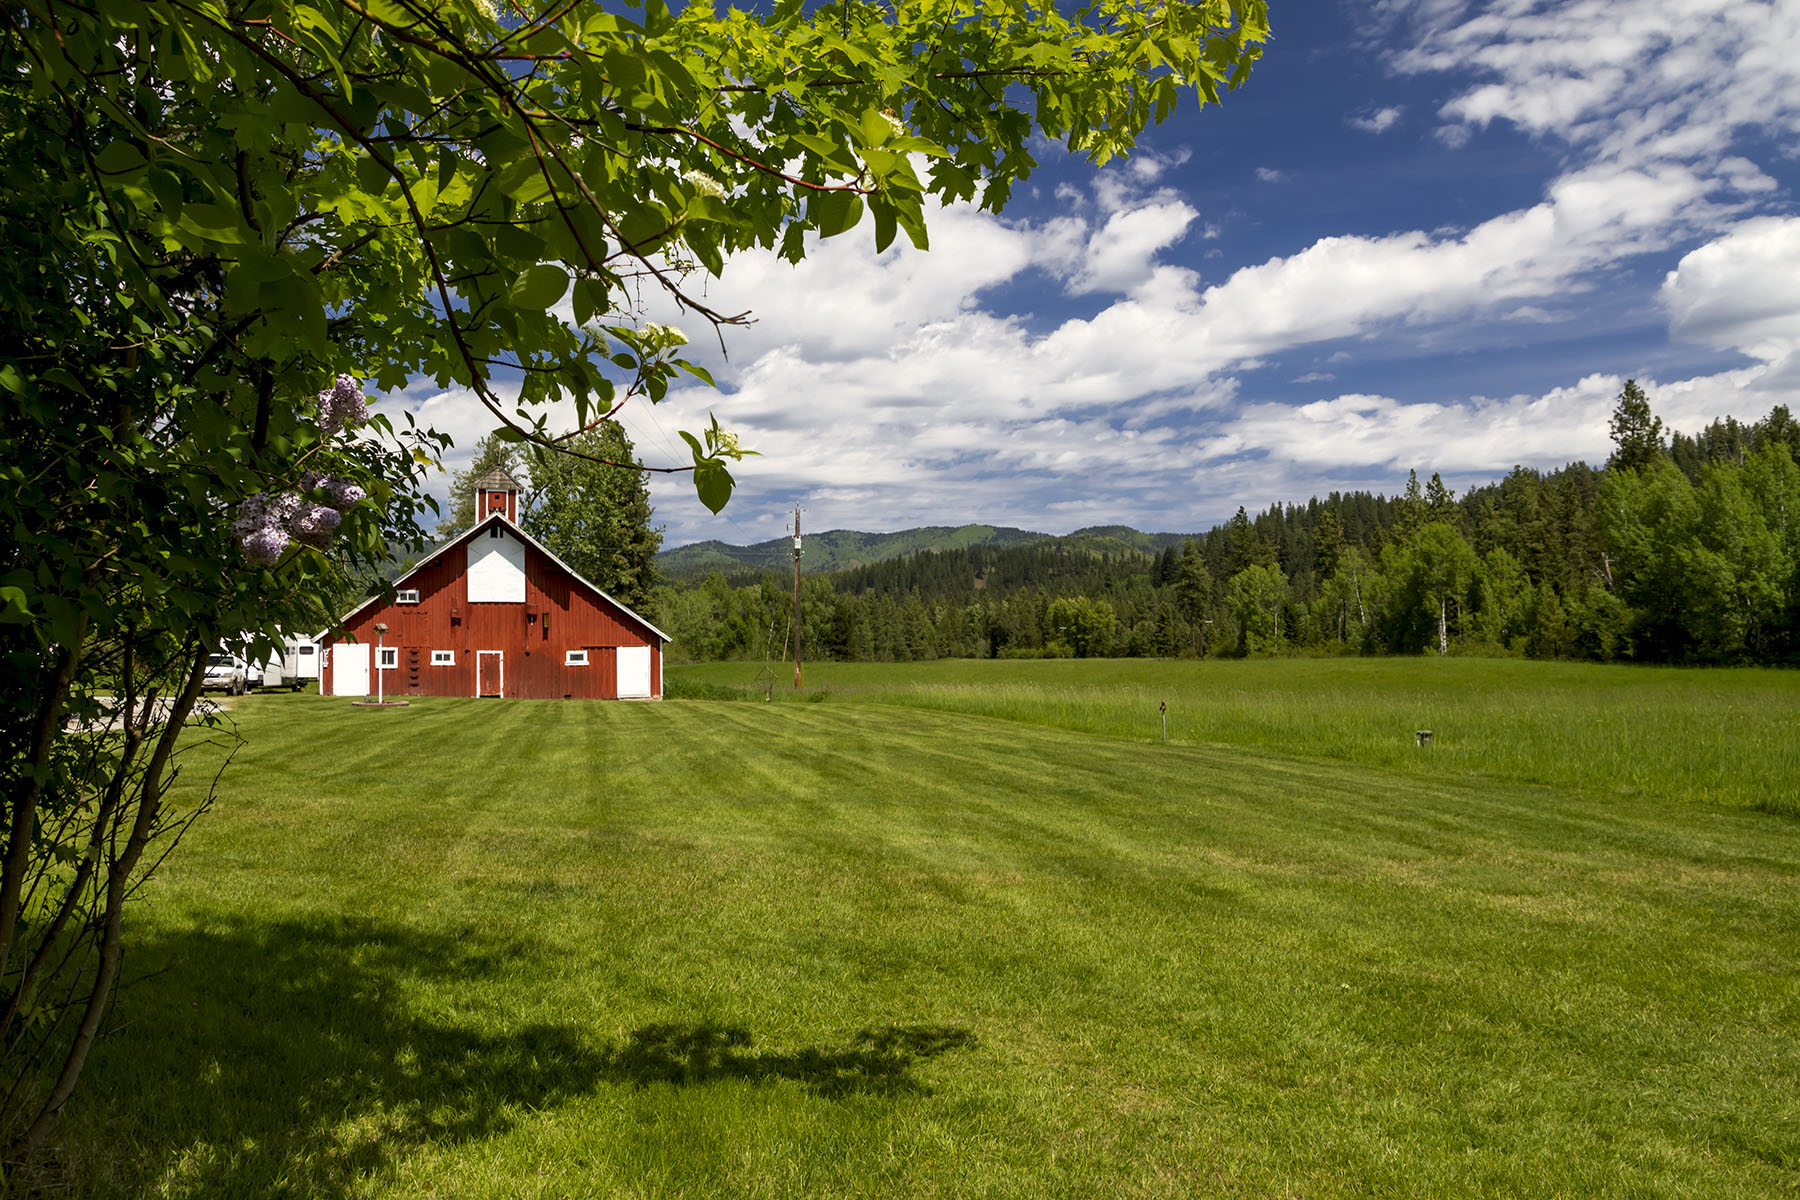 Single Family Home for Sale at Beautiful ranch property 267 Le Clerc Rd Oldtown, Idaho, 83822 United States